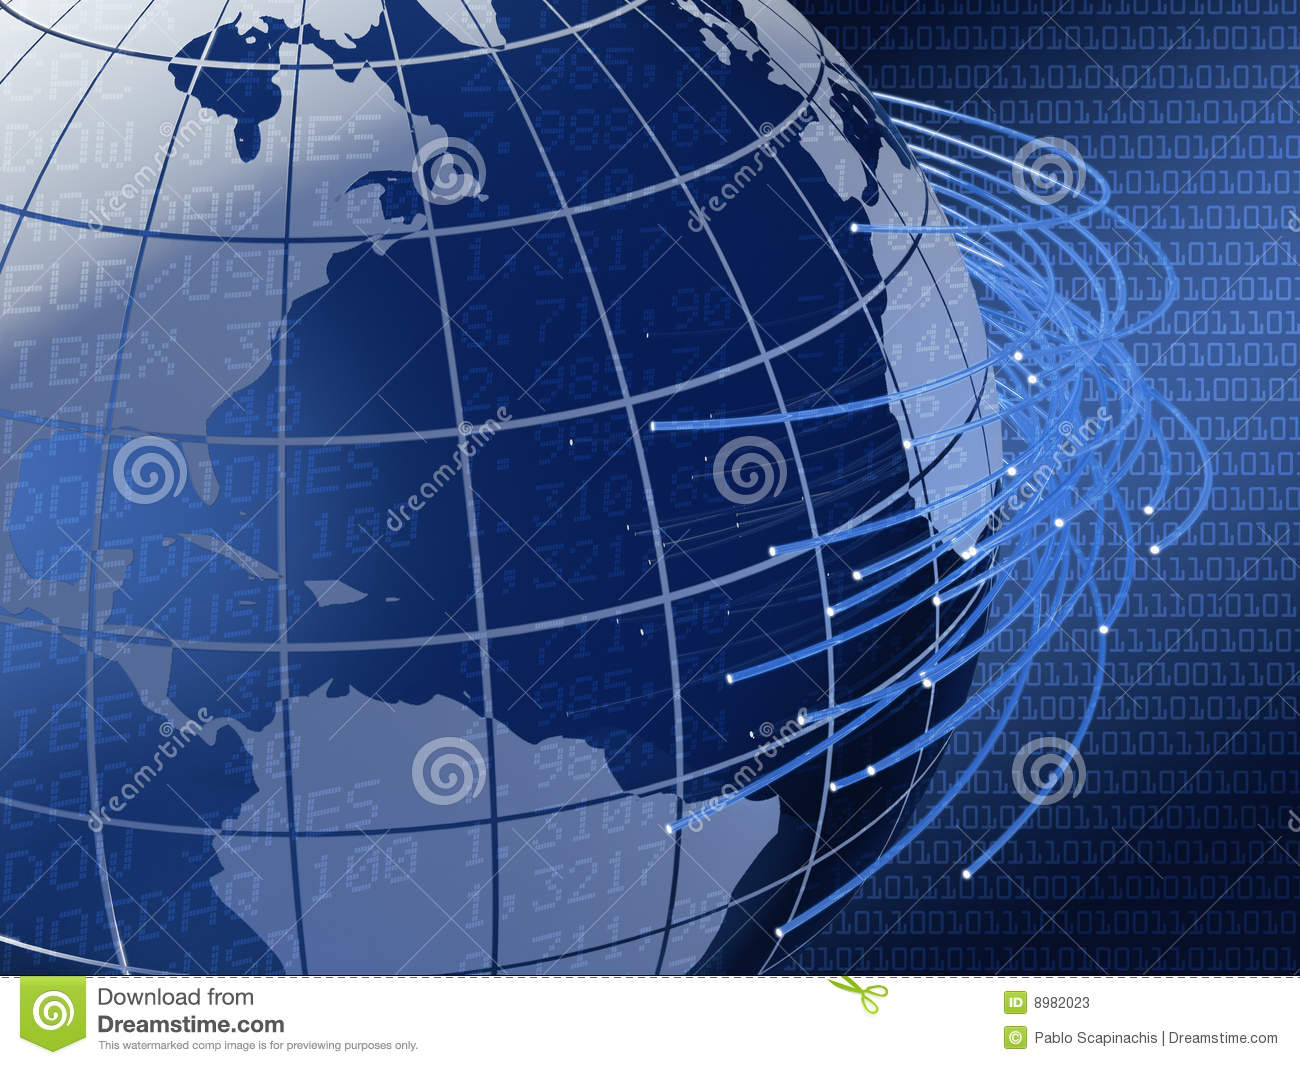 Free Satellite Internet >> Global Telecommunications Background Design Stock Image - Image of internet, fiber: 8982023